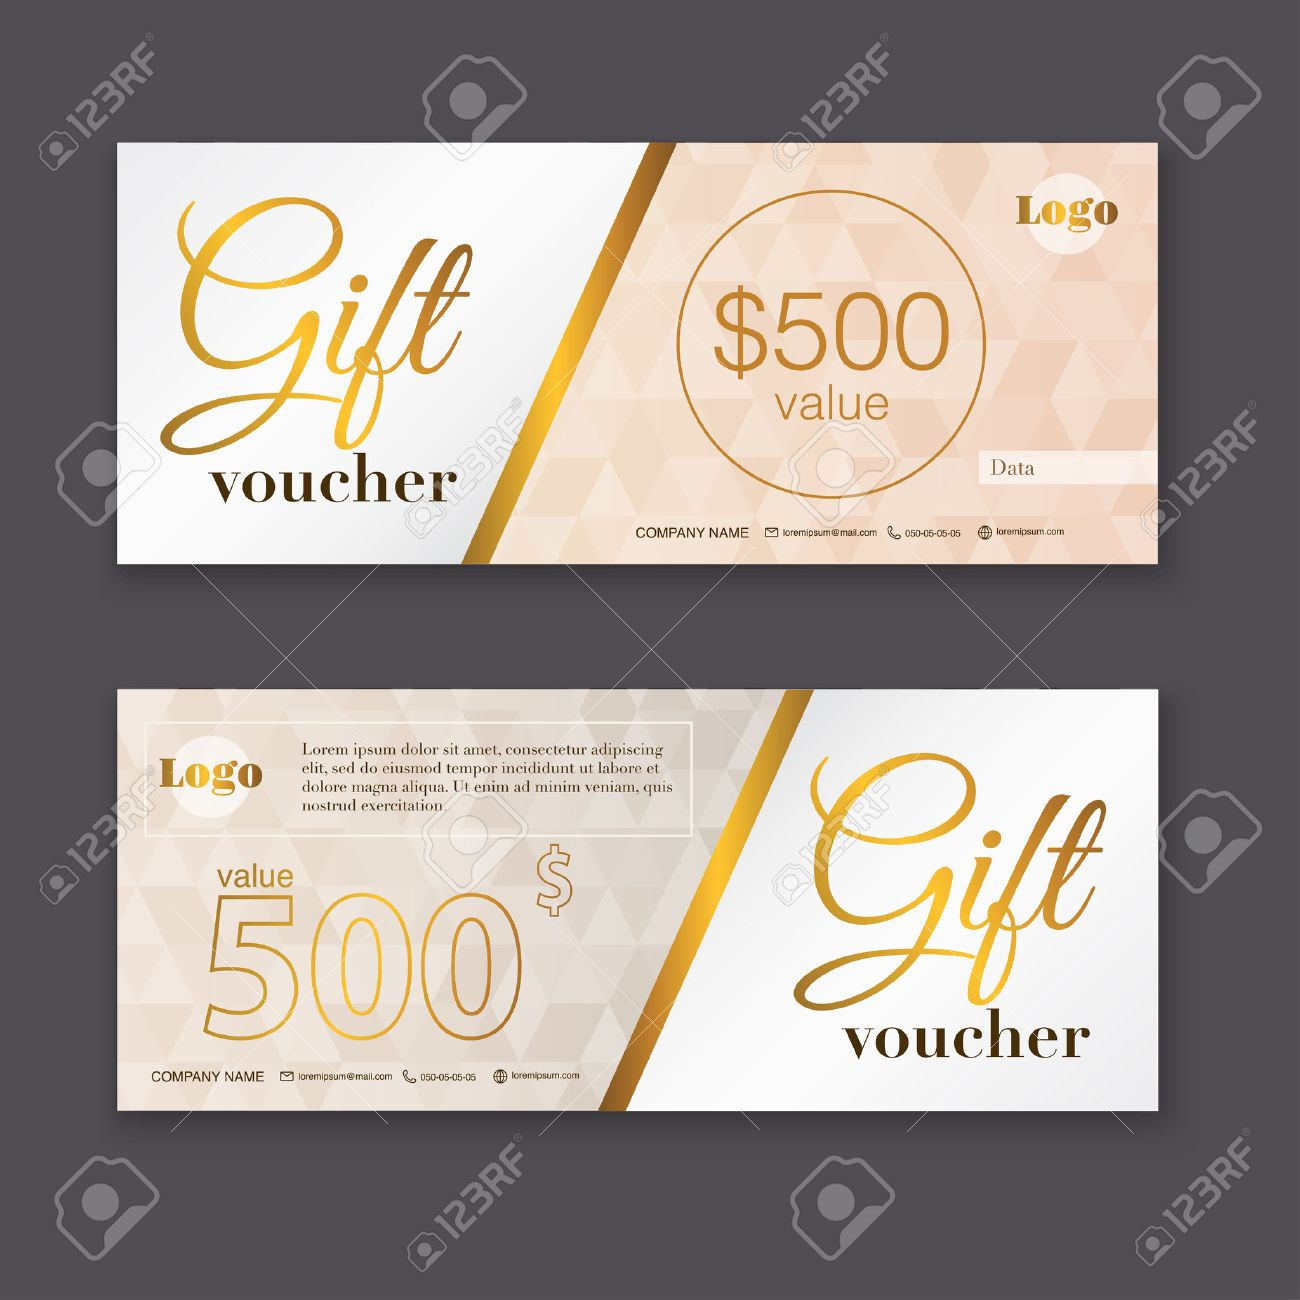 gift voucher template gold pattern gift certificate gift voucher template gold pattern gift certificate background design gift coupon voucher